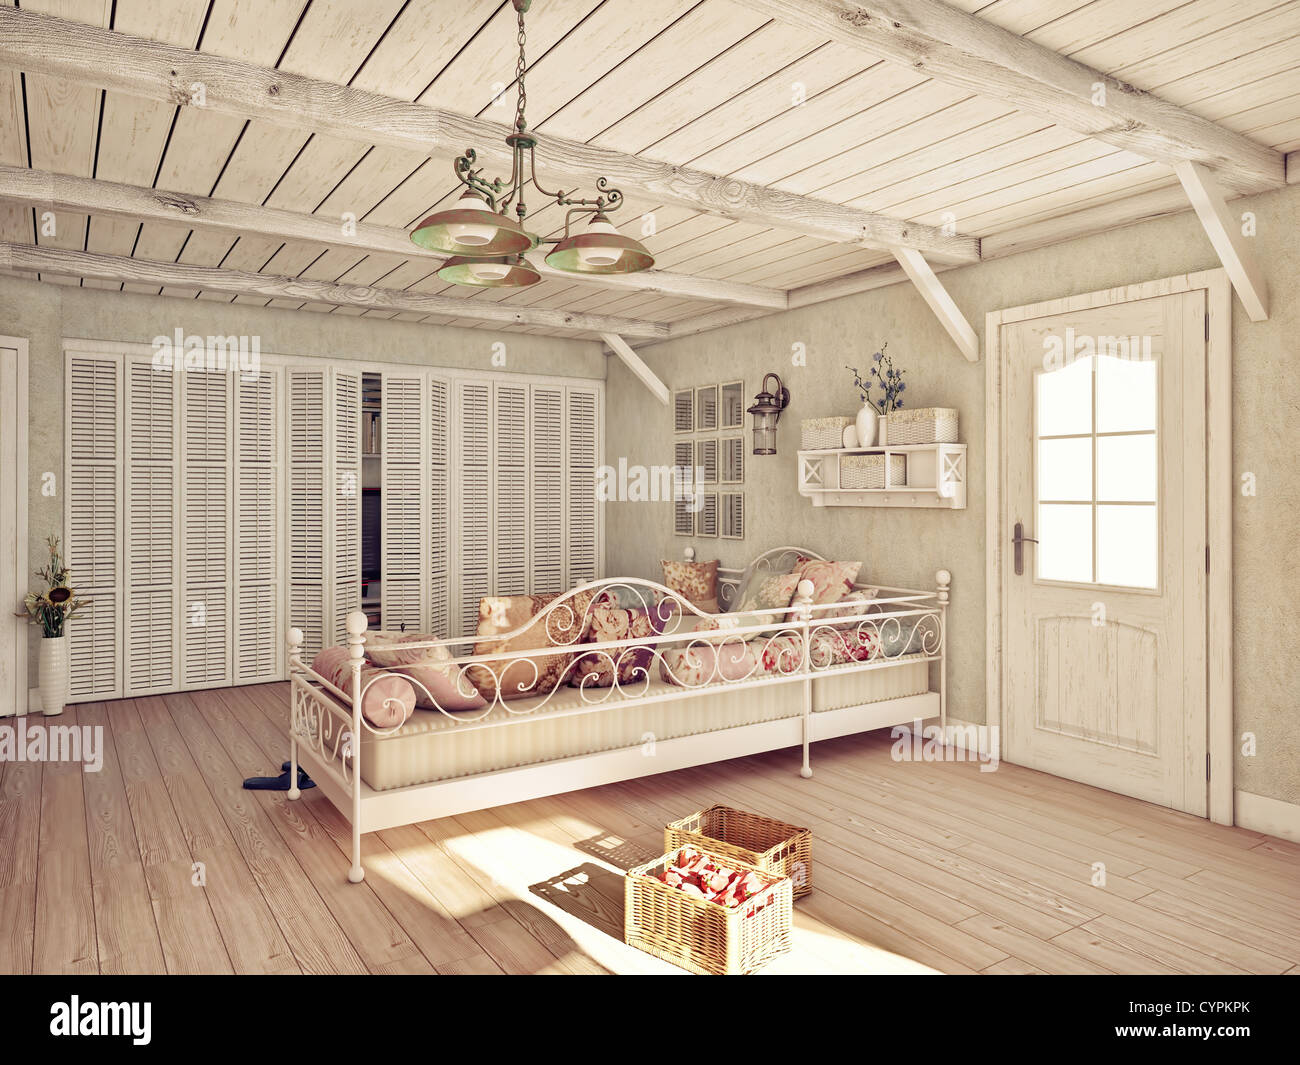 Provence style interior (3D rendering) - Stock Image